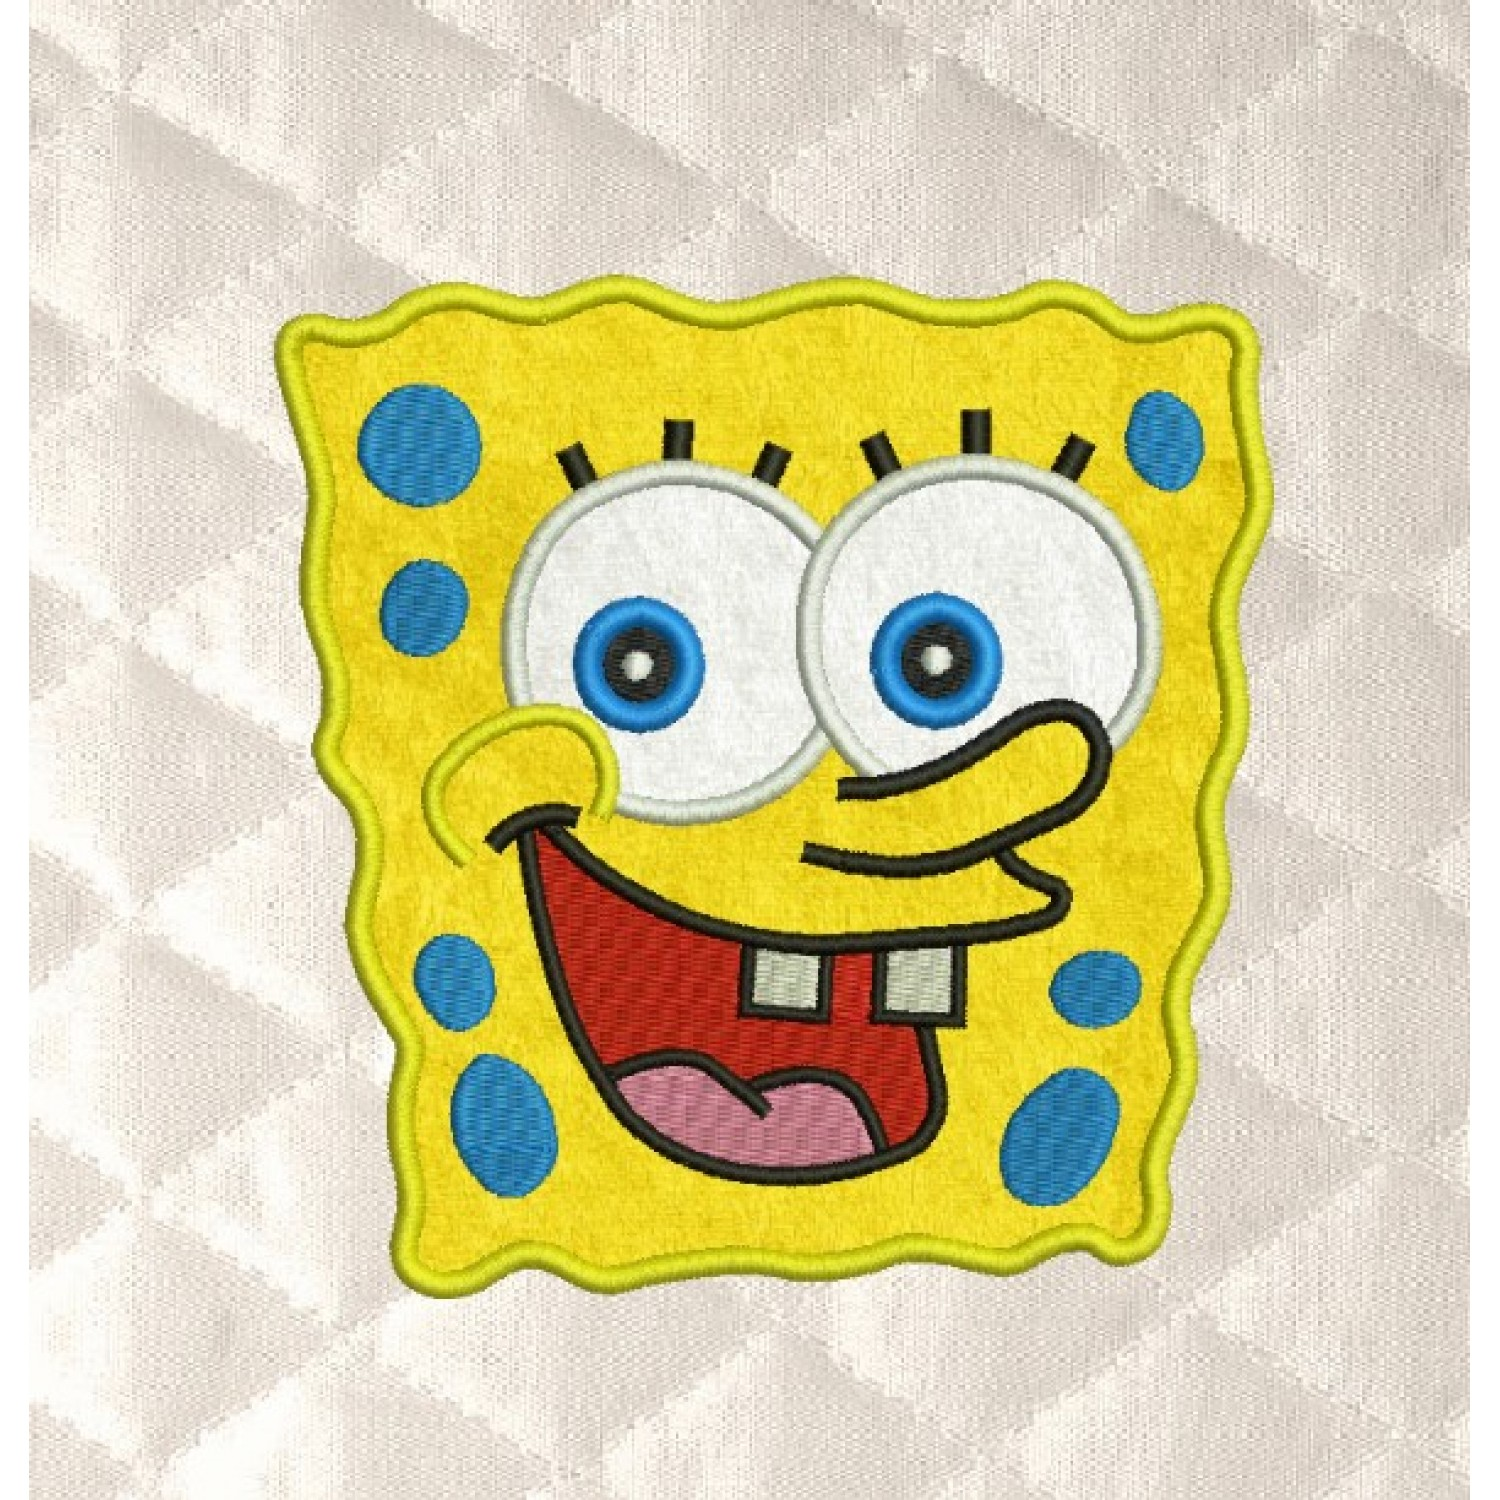 spongebob face applique